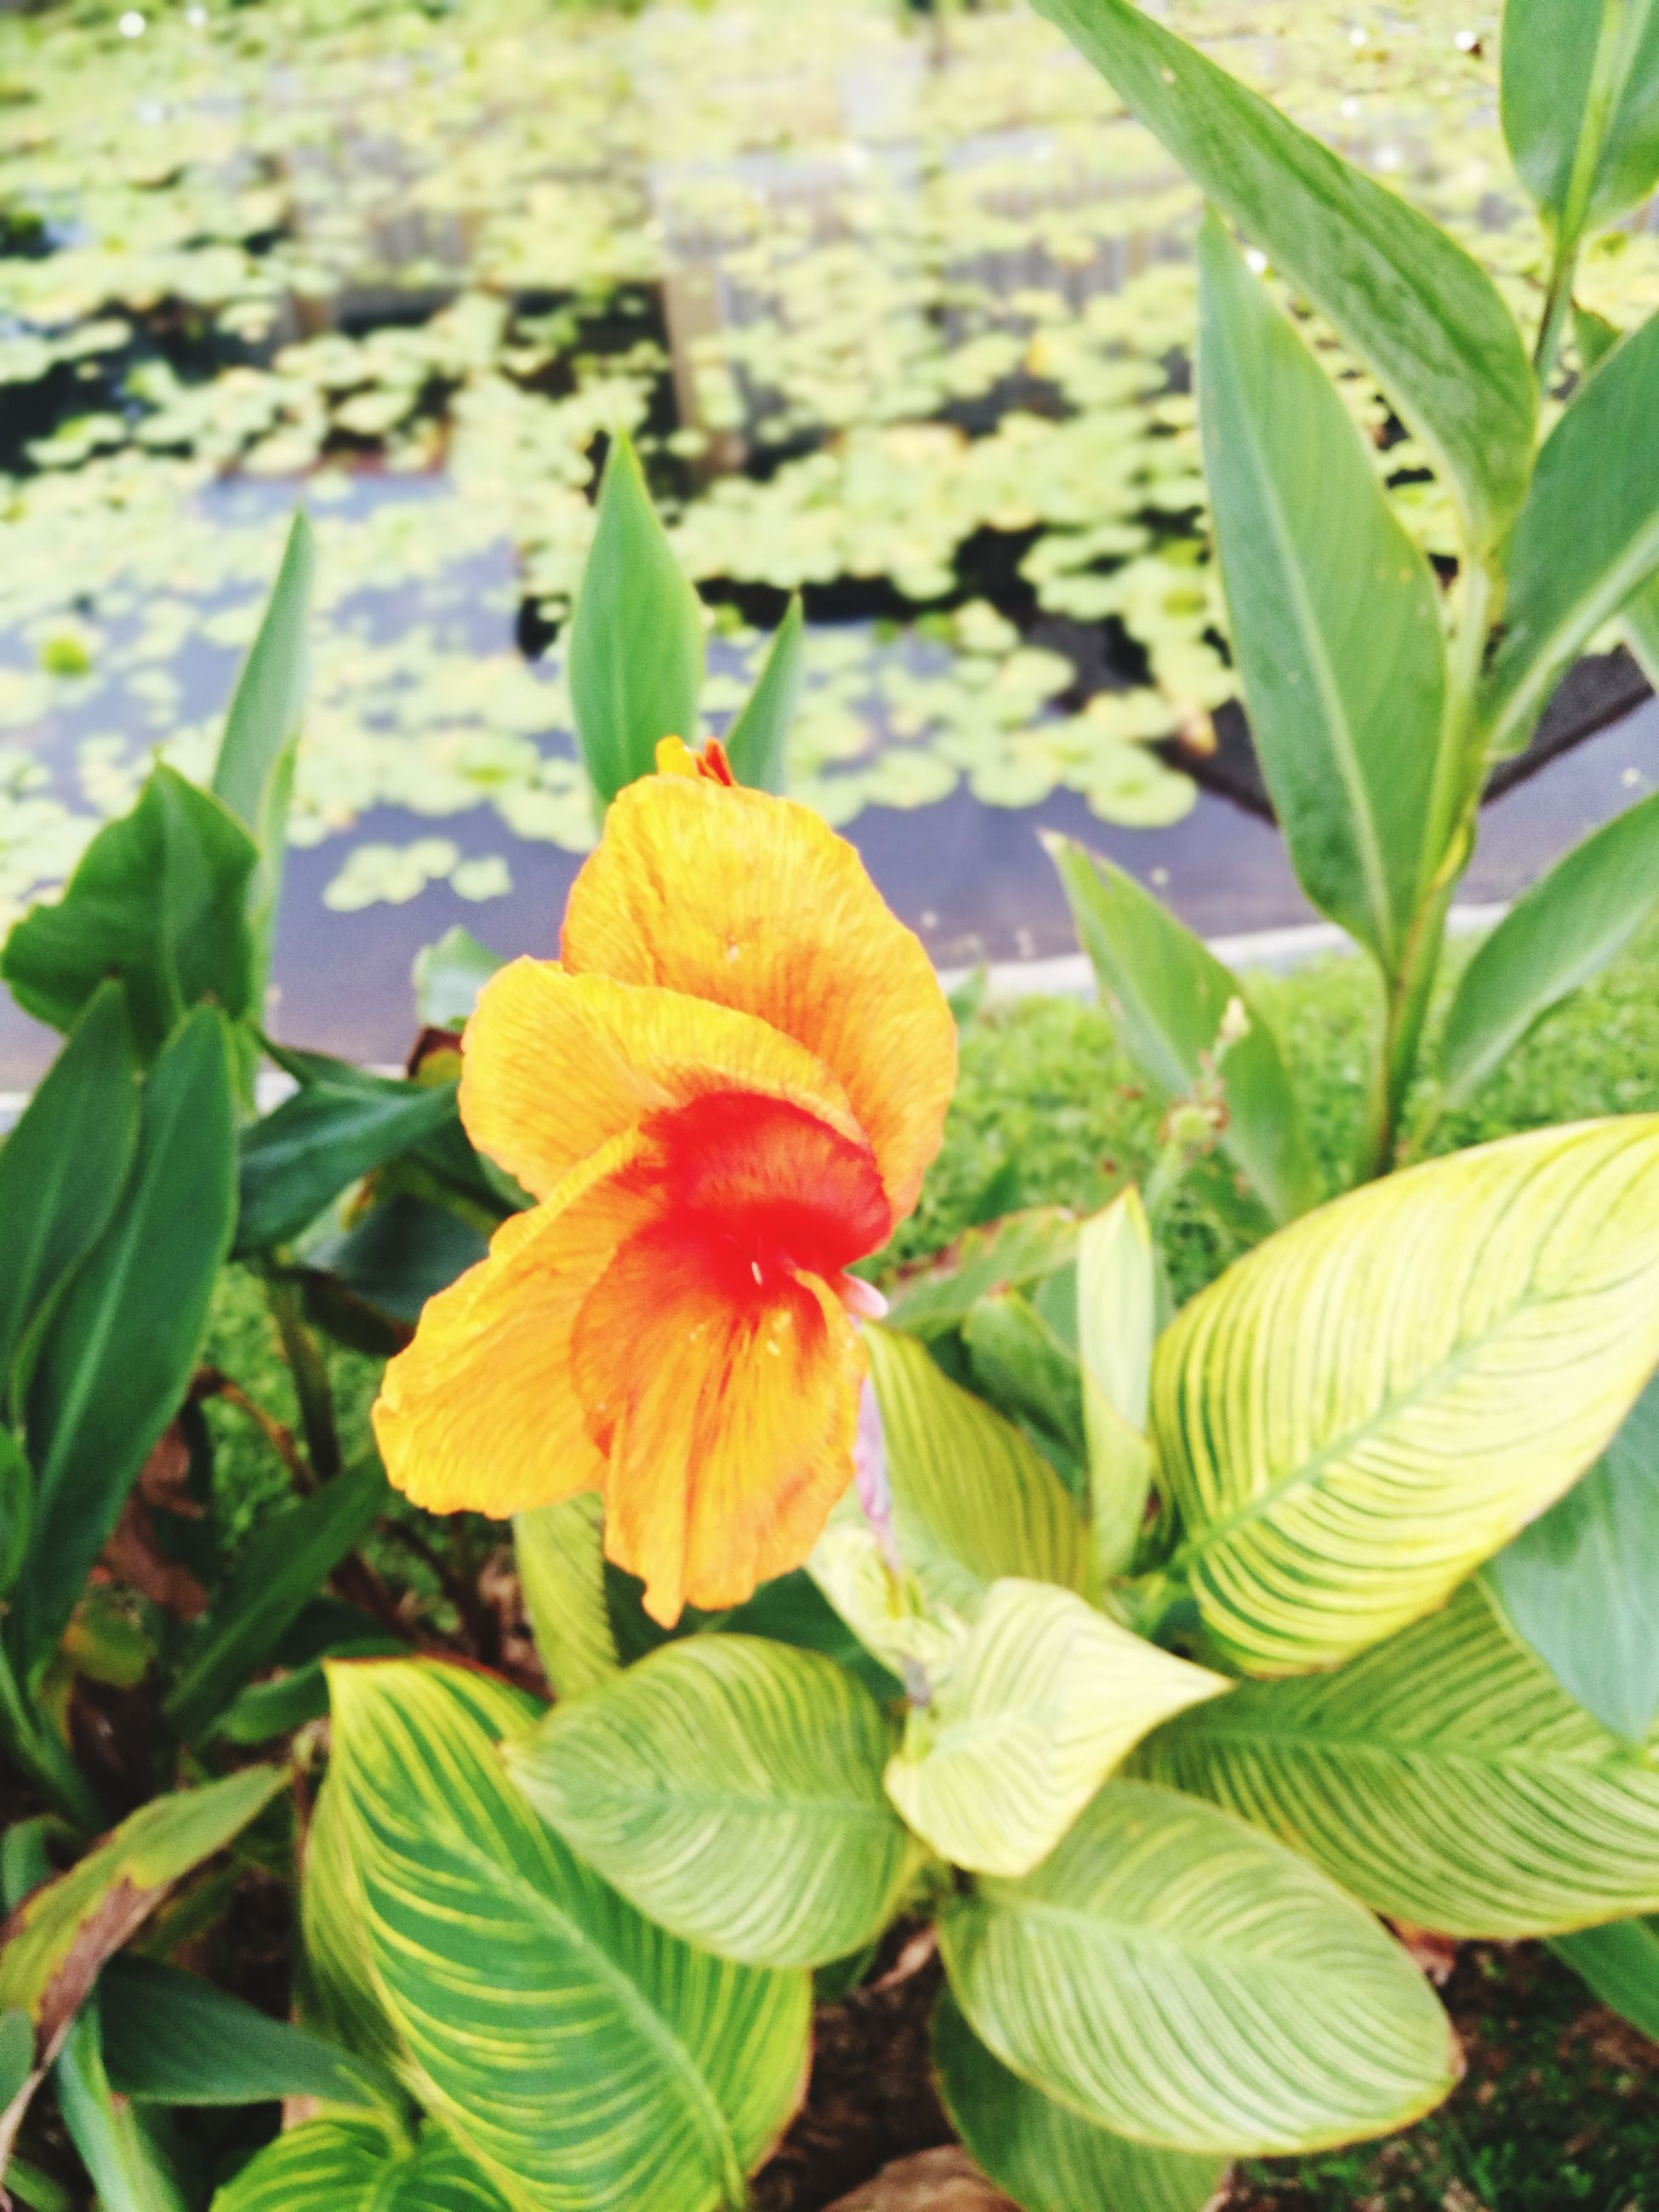 flower, petal, growth, fragility, leaf, plant, green color, freshness, beauty in nature, nature, flower head, no people, day, close-up, blooming, outdoors, yellow, hibiscus, day lily